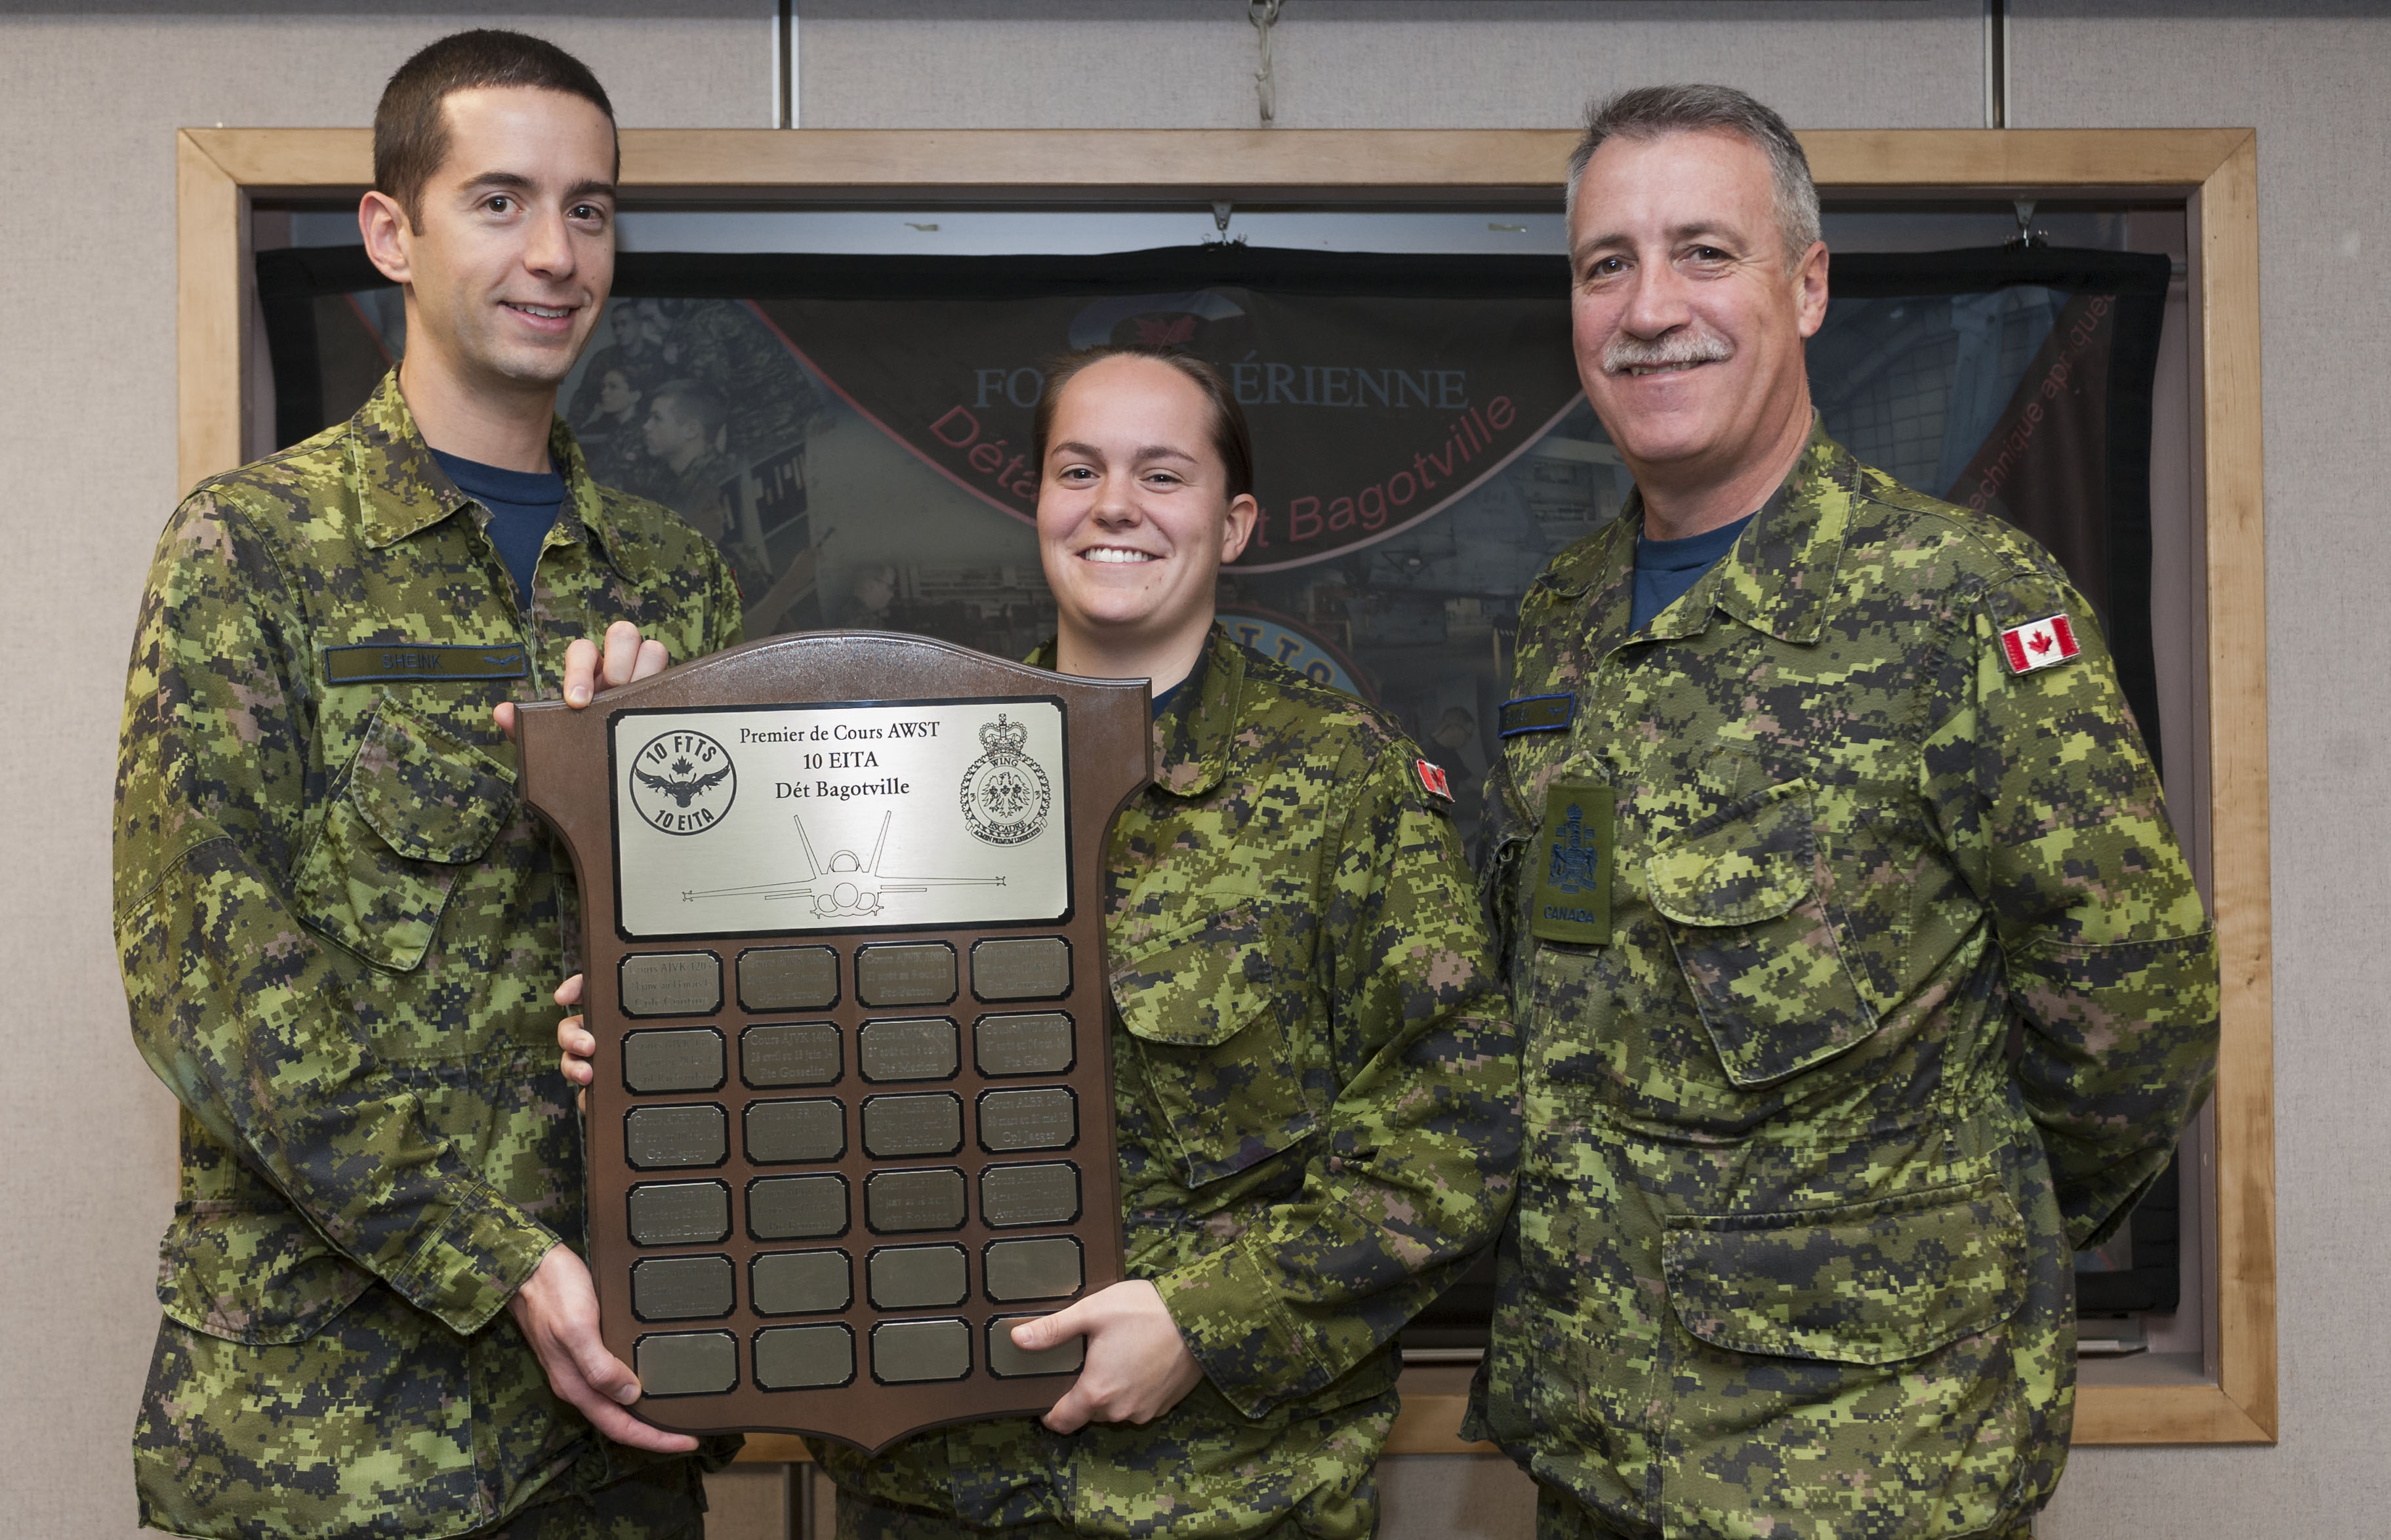 Two men and a woman, dressed in green disruptive pattern combat uniforms, look into the camera. The man on the left and the woman in the centre hold a large wooden plaque that has small engraved brass plaques attached to it.